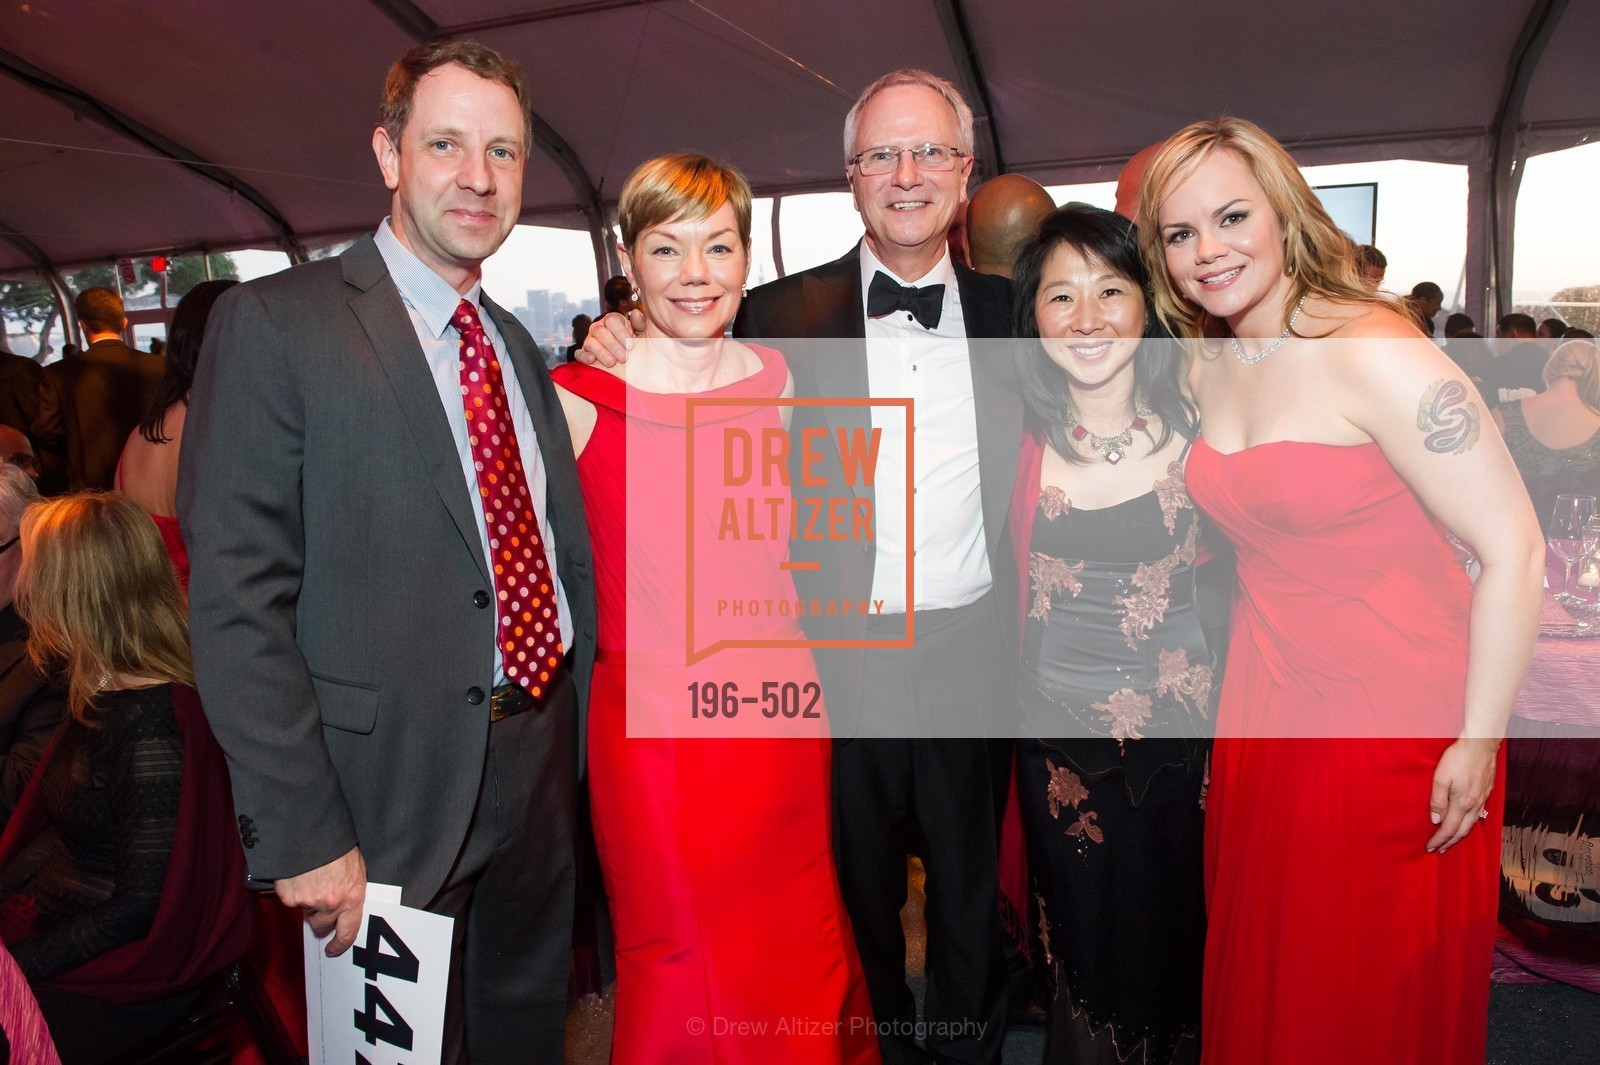 Greg McGlinn, Paula Downey, Michael Downey, May McGlinn, Sarah Downey, 2014 RED CROSS Gala Honoring Paula Downey as the American Red Cross Bay Area Chapter Humanitarian CEO of the Year, US. Treasure Island (The Great Lawn), April 5th, 2014,Drew Altizer, Drew Altizer Photography, full-service agency, private events, San Francisco photographer, photographer california